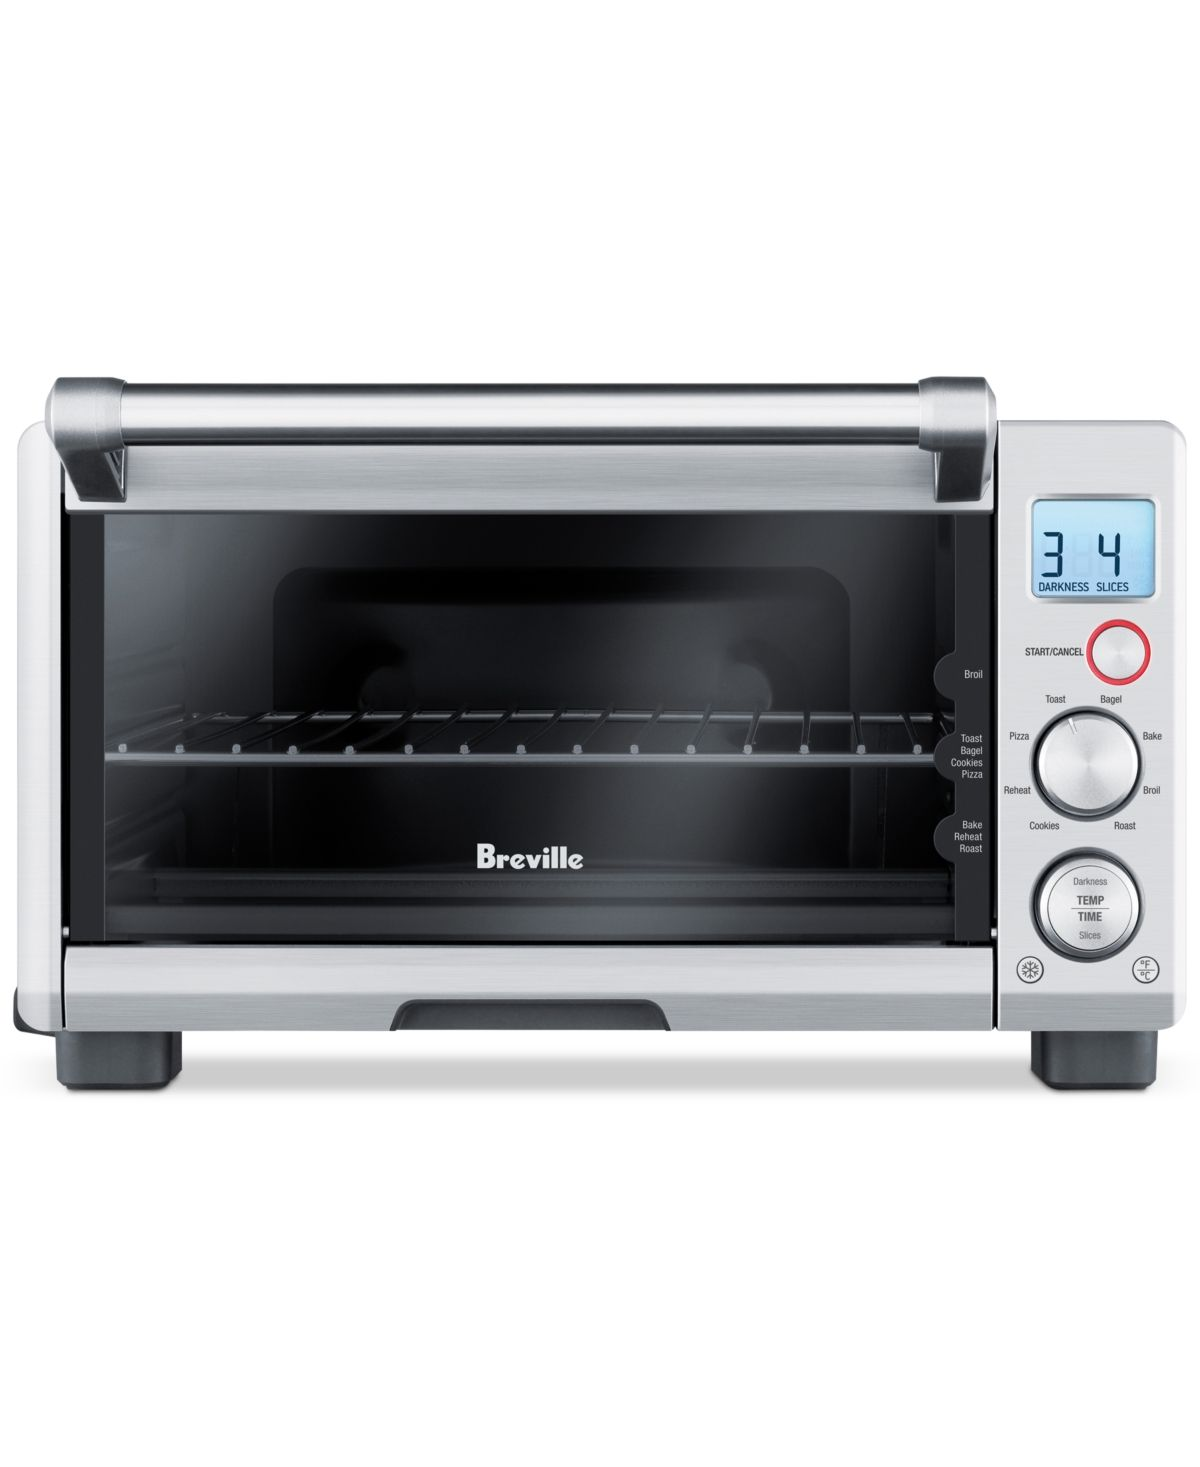 Breville Bov650xl Toaster Oven Compact Smart Reviews Small